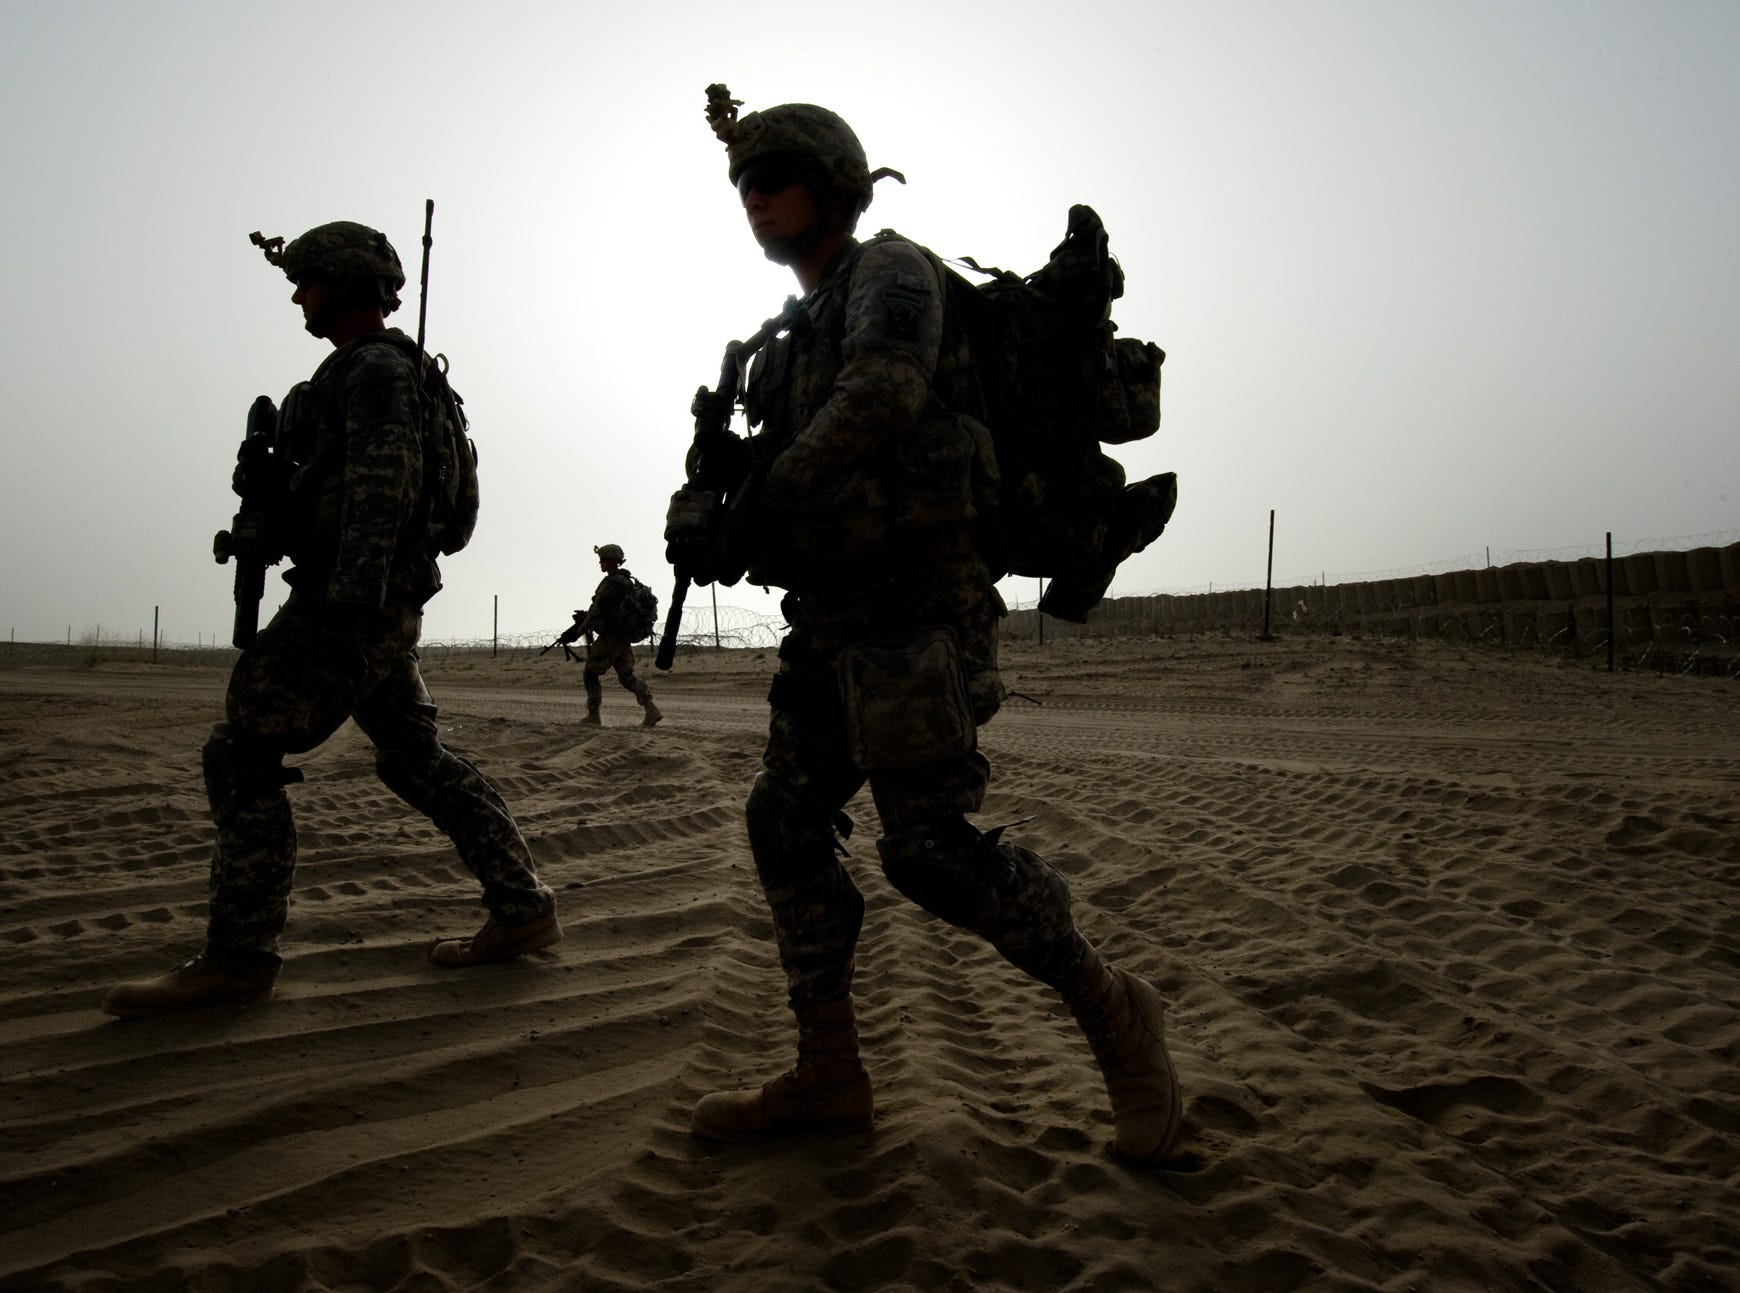 "Members of Vermont National Guard's Delta Company, 3rd Platoon, leave the safety of an Afghan Combat Outpost near the village of Rahman Keyhl in southern Paktia Province on Wednesday, September 15, 2010. The base, started two months ago, received repeated fire from insurgents in an area known to have a strong Taliban presence. Attacks have slowed with the presence of American, Afghan National Army and Macedonian soldiers, but areas nearby are still regarded as a ""Tier 1 Hot Spot"" by Delta Company."